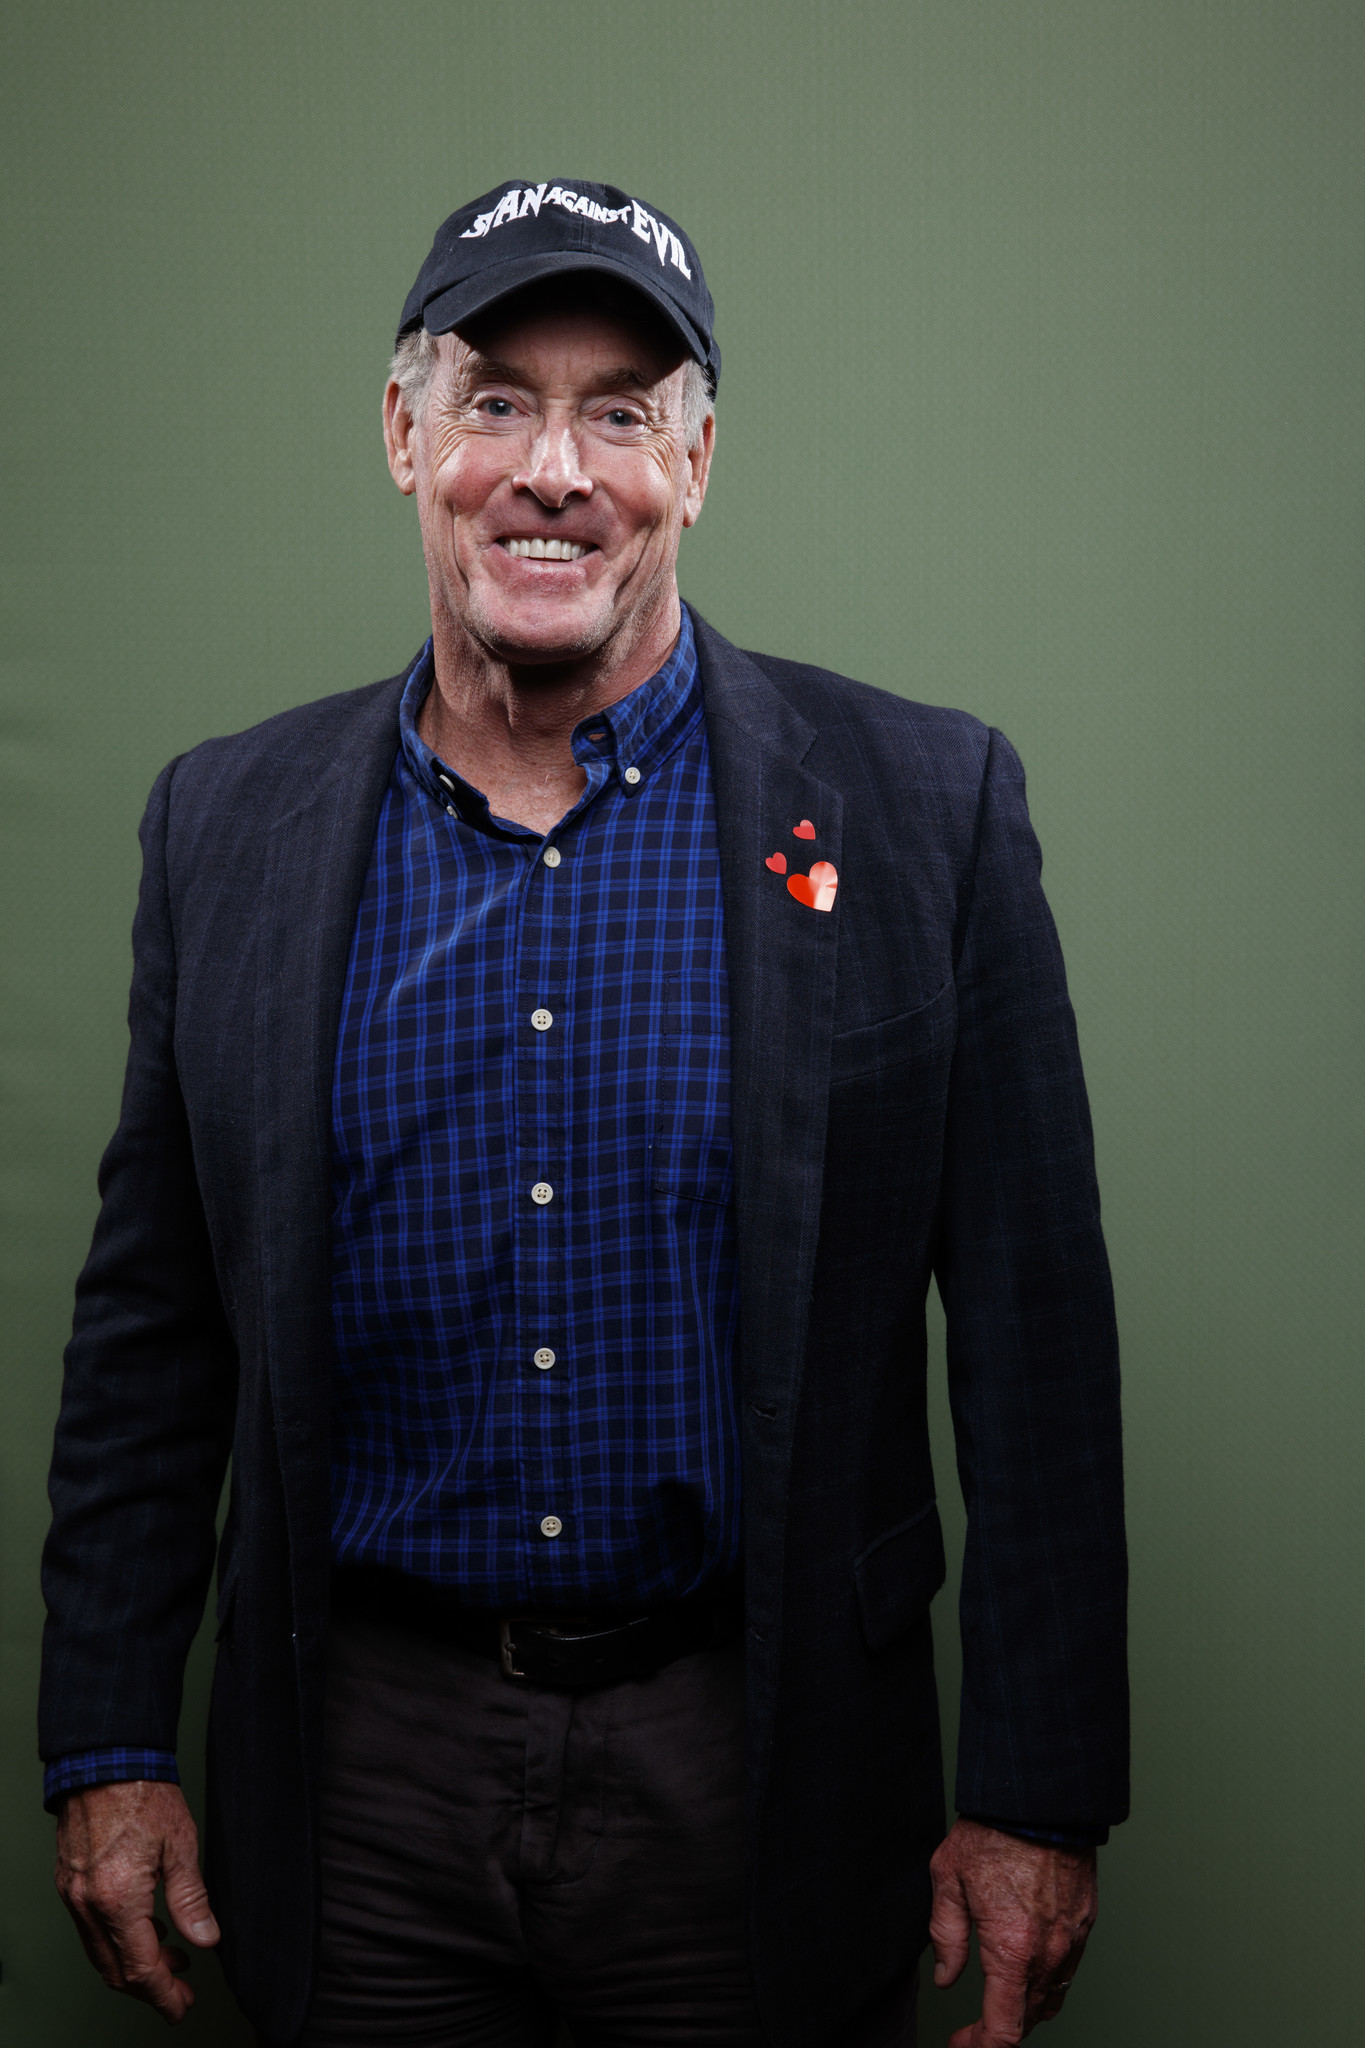 """SAN DIEGO, CALIF. -- JULY 21, 2018-- John C. McGinley from the television series """"Stan Against Evi"""